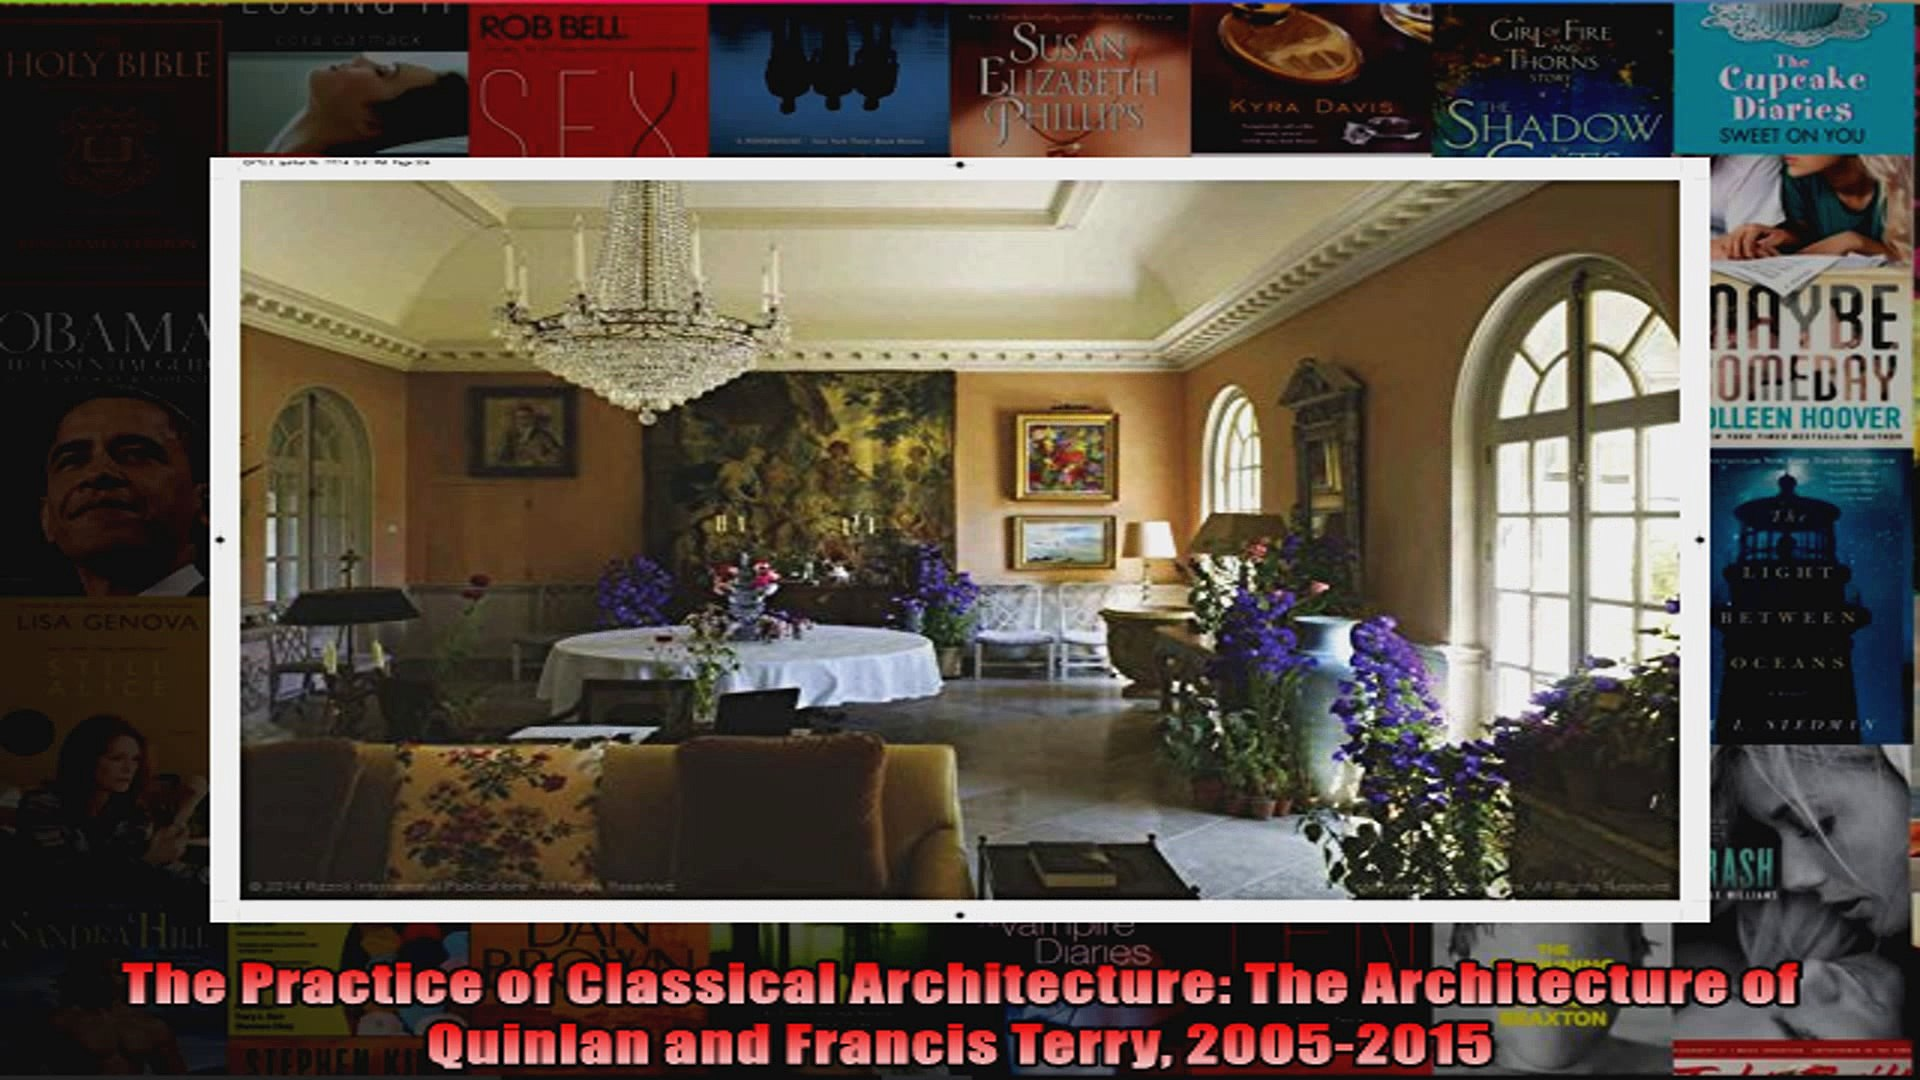 2005-2015 The Practice of Classical Architecture The Architecture of Quinlan and Francis Terry